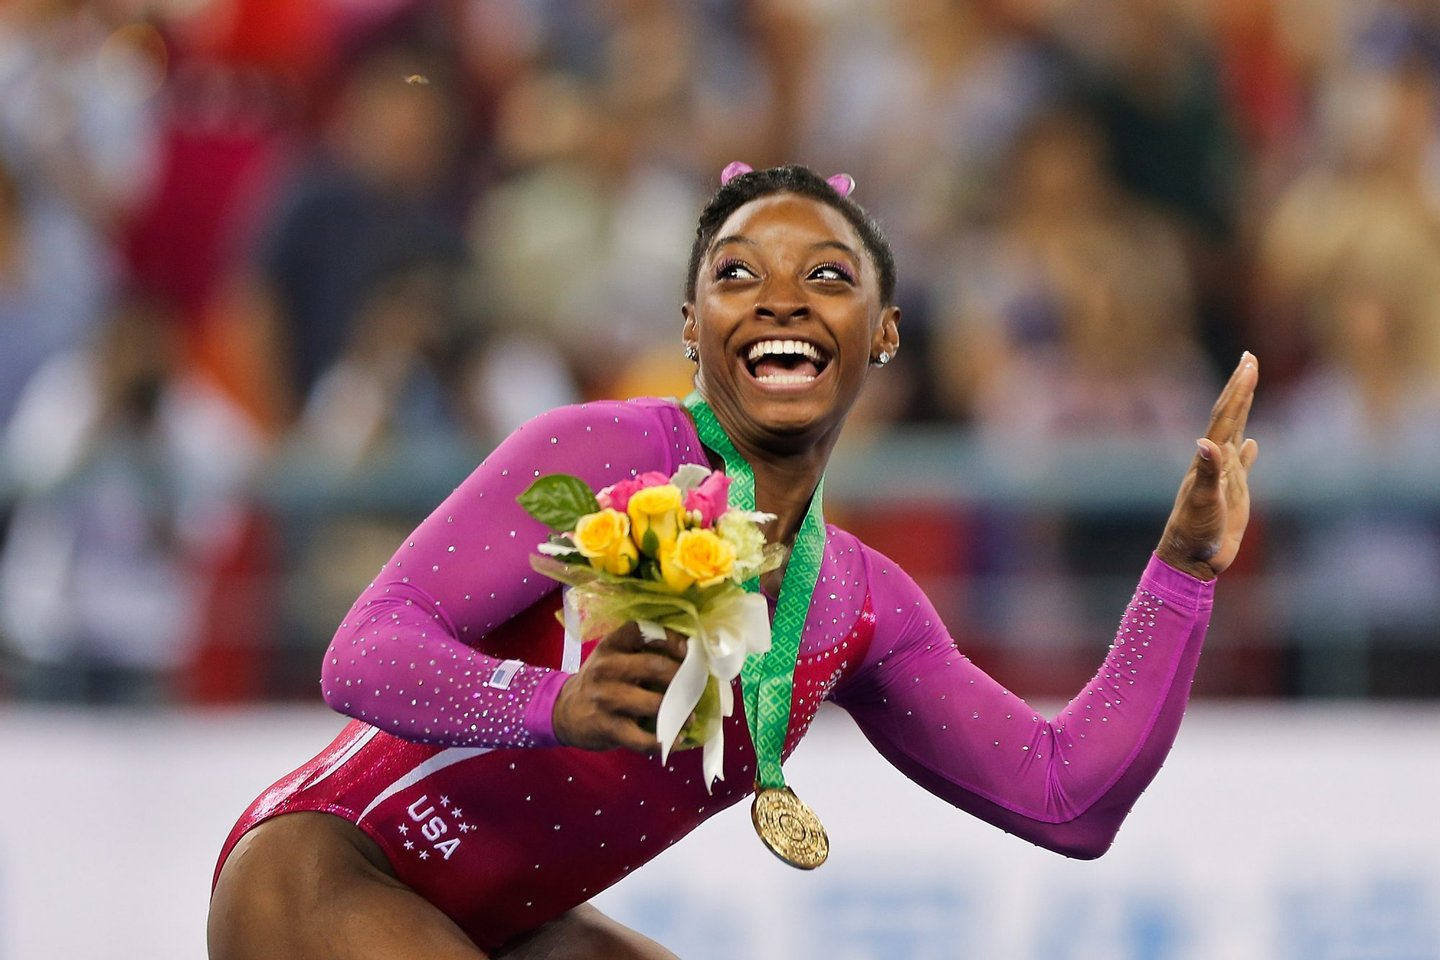 NANNING, CHINA - OCTOBER 10: Gold medalist Simone Biles of United States scared form a bee fly during the medal ceremony after the Women's All-Around Final in day four of the 45th Artistic Gymnastics World Championships at Guangxi Sports Center Stadium on October 10, 2014 in Nanning, China. (Photo by Lintao Zhang/Getty Images)